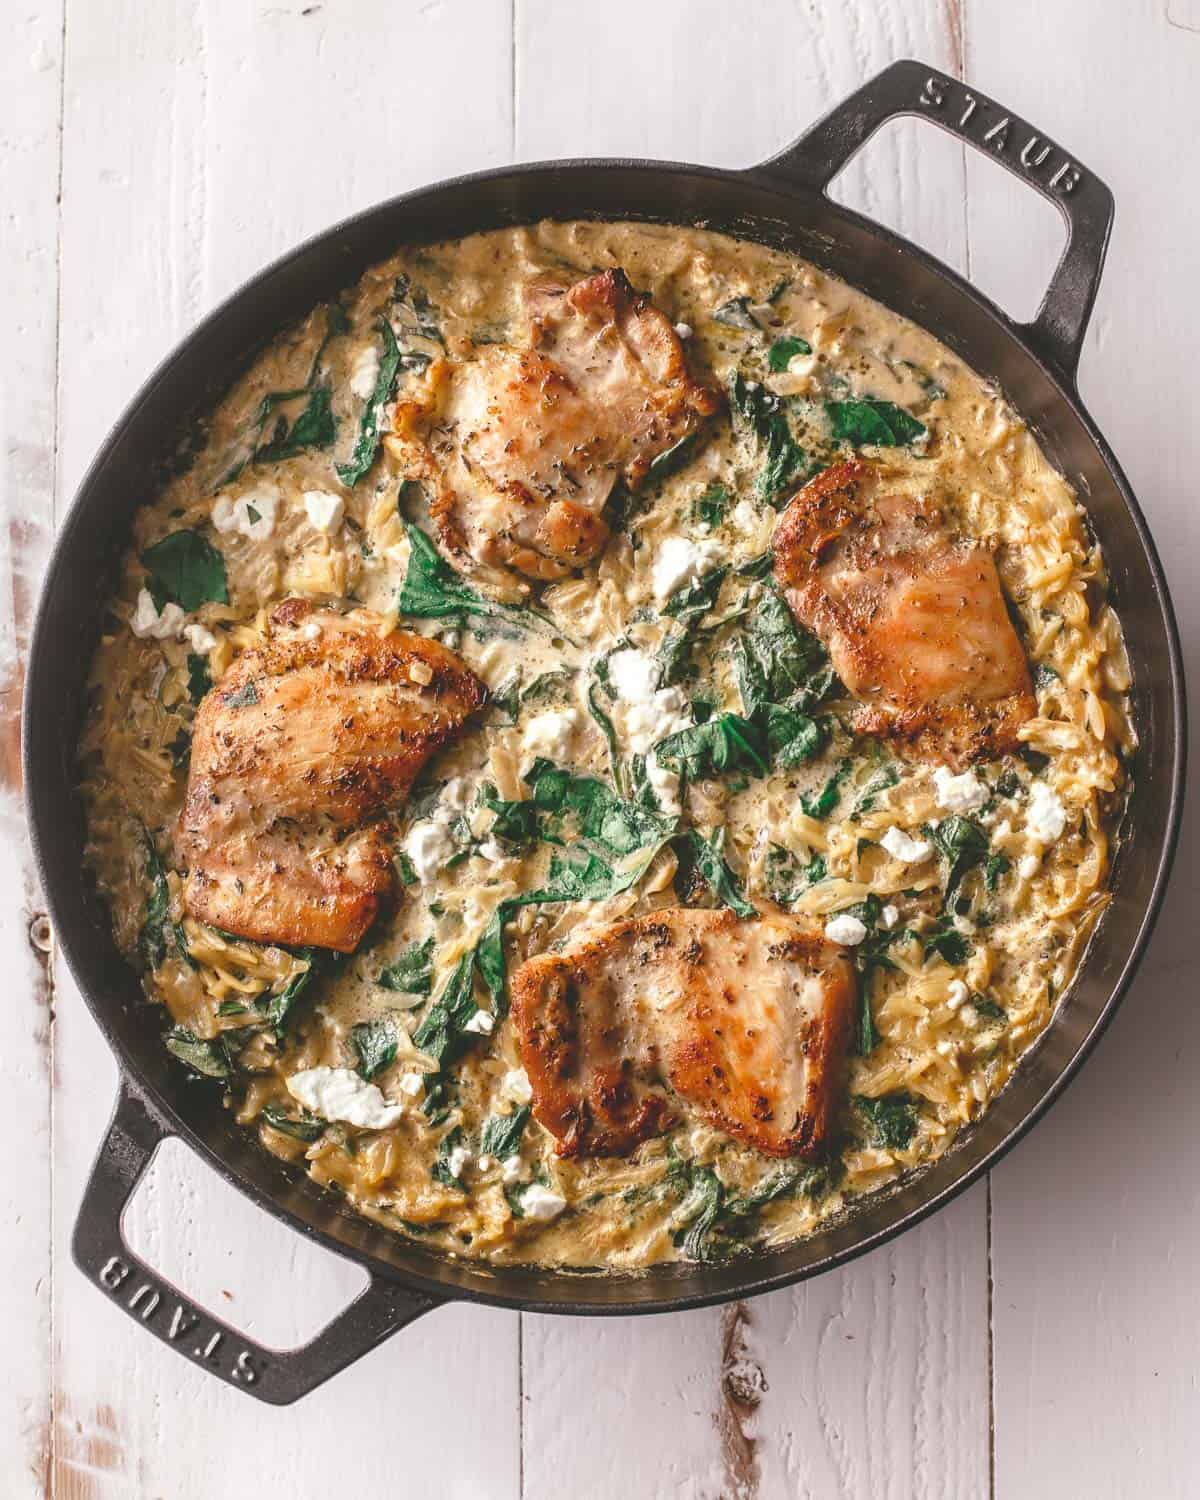 chicken and pasta in a pan